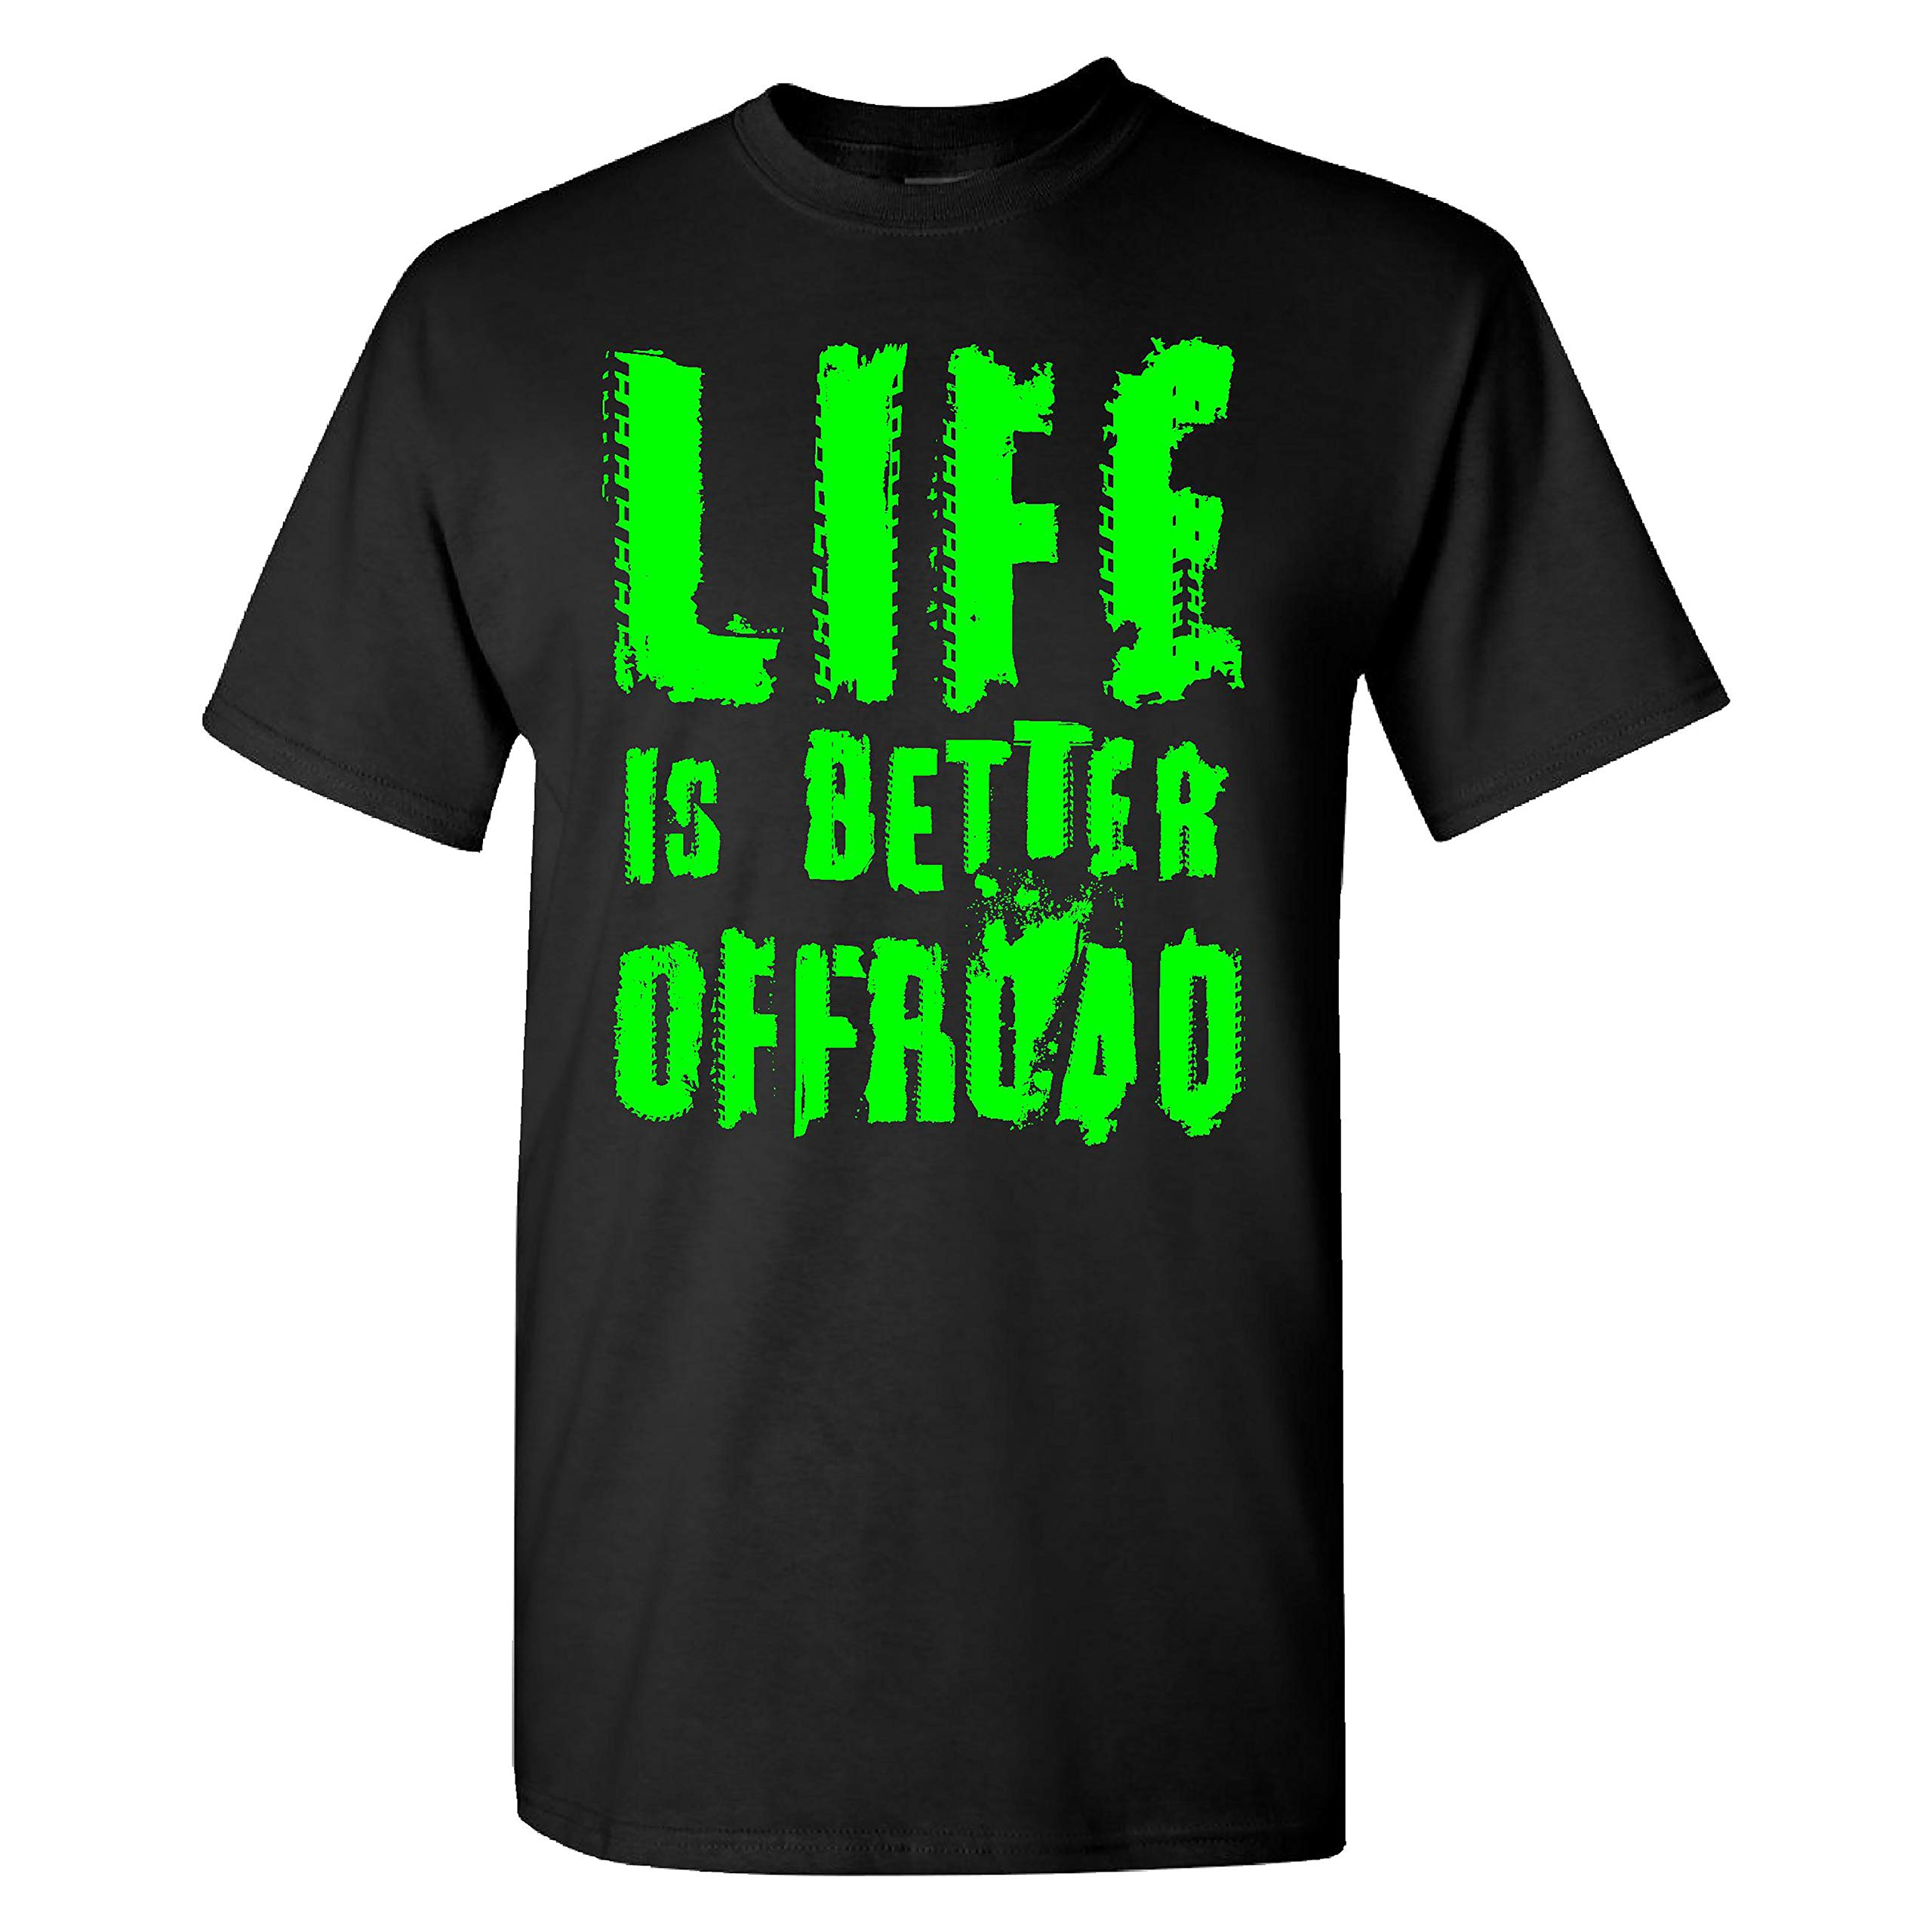 Extreme Muddin Life is Better Offroad on a Black T Shirt - 5X